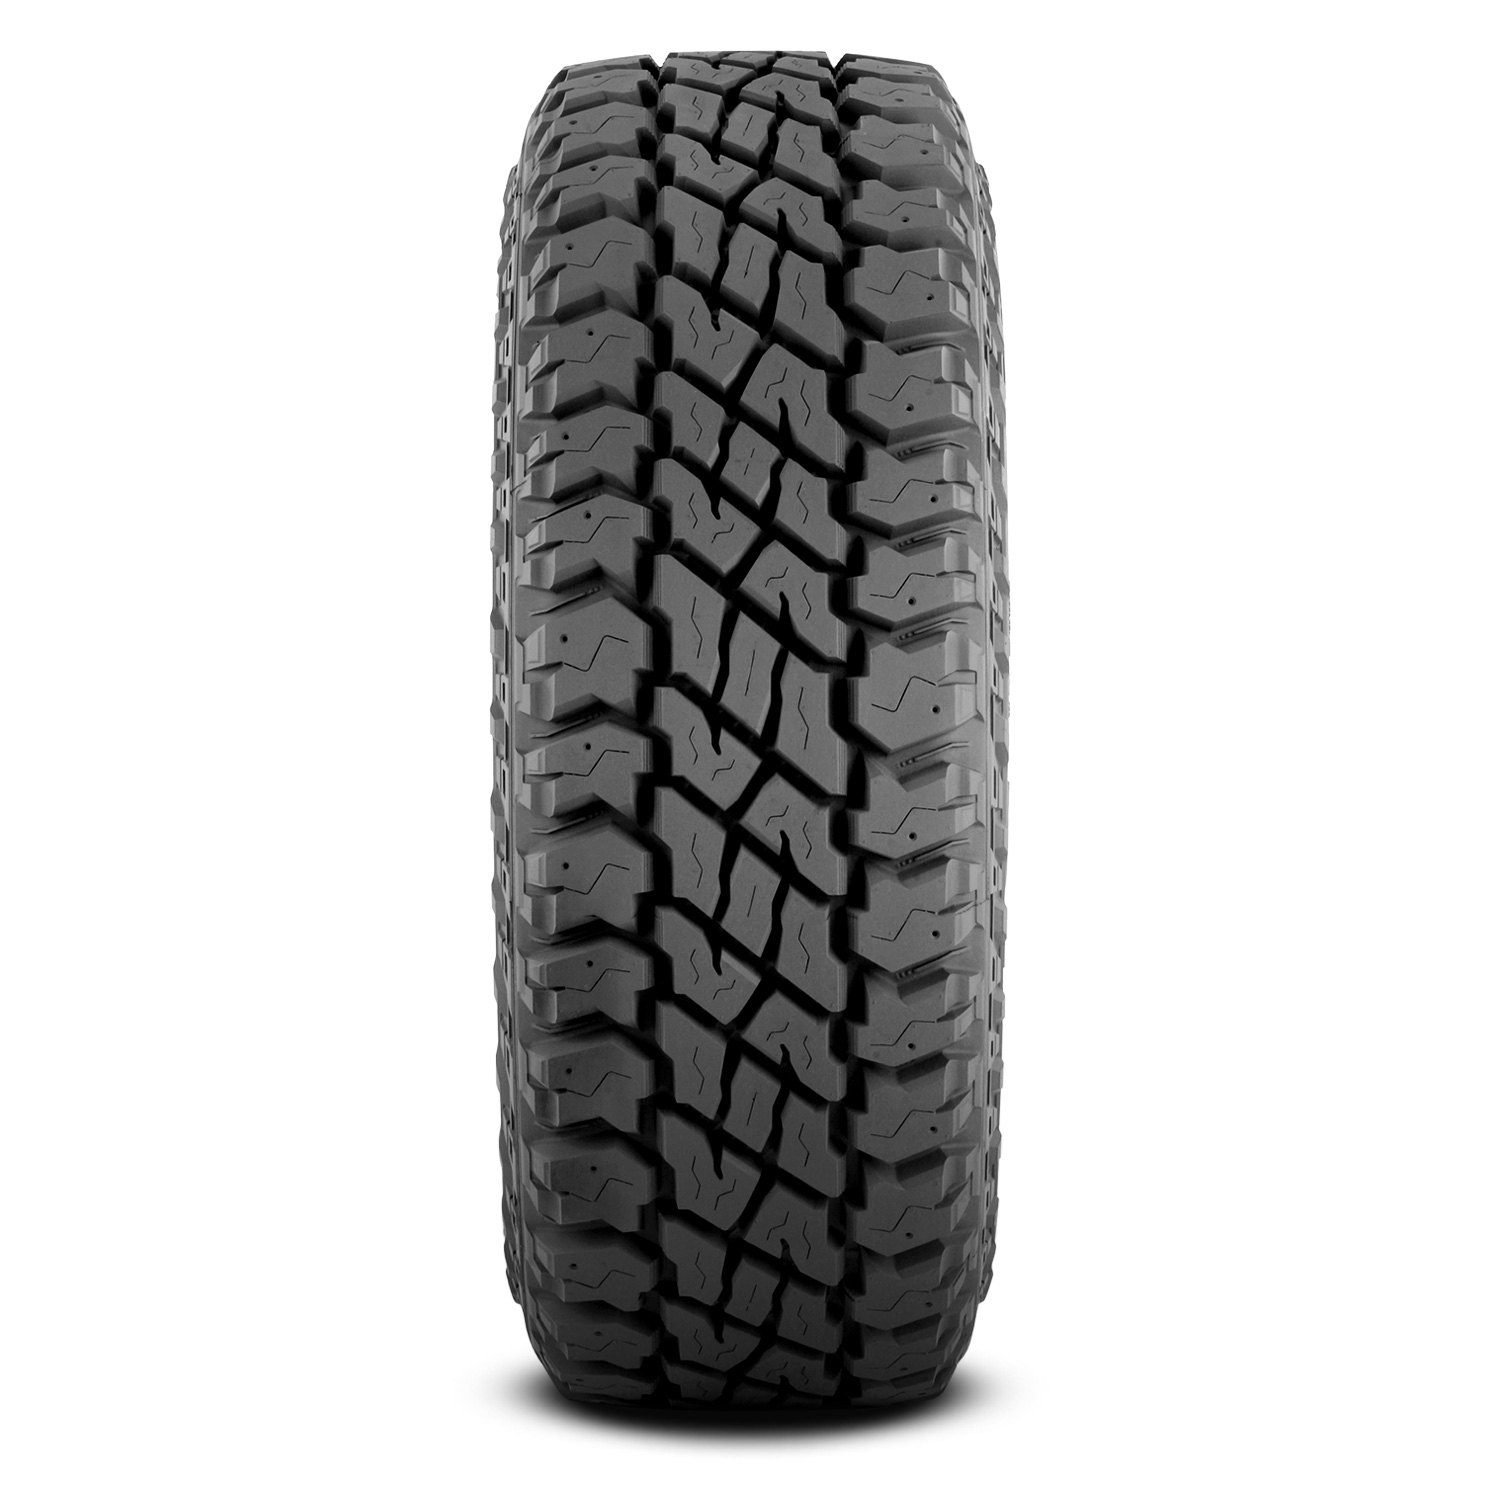 Cooper Tires Discoverer S/T Maxx Light Truck/SUV Mud Terrain Tire